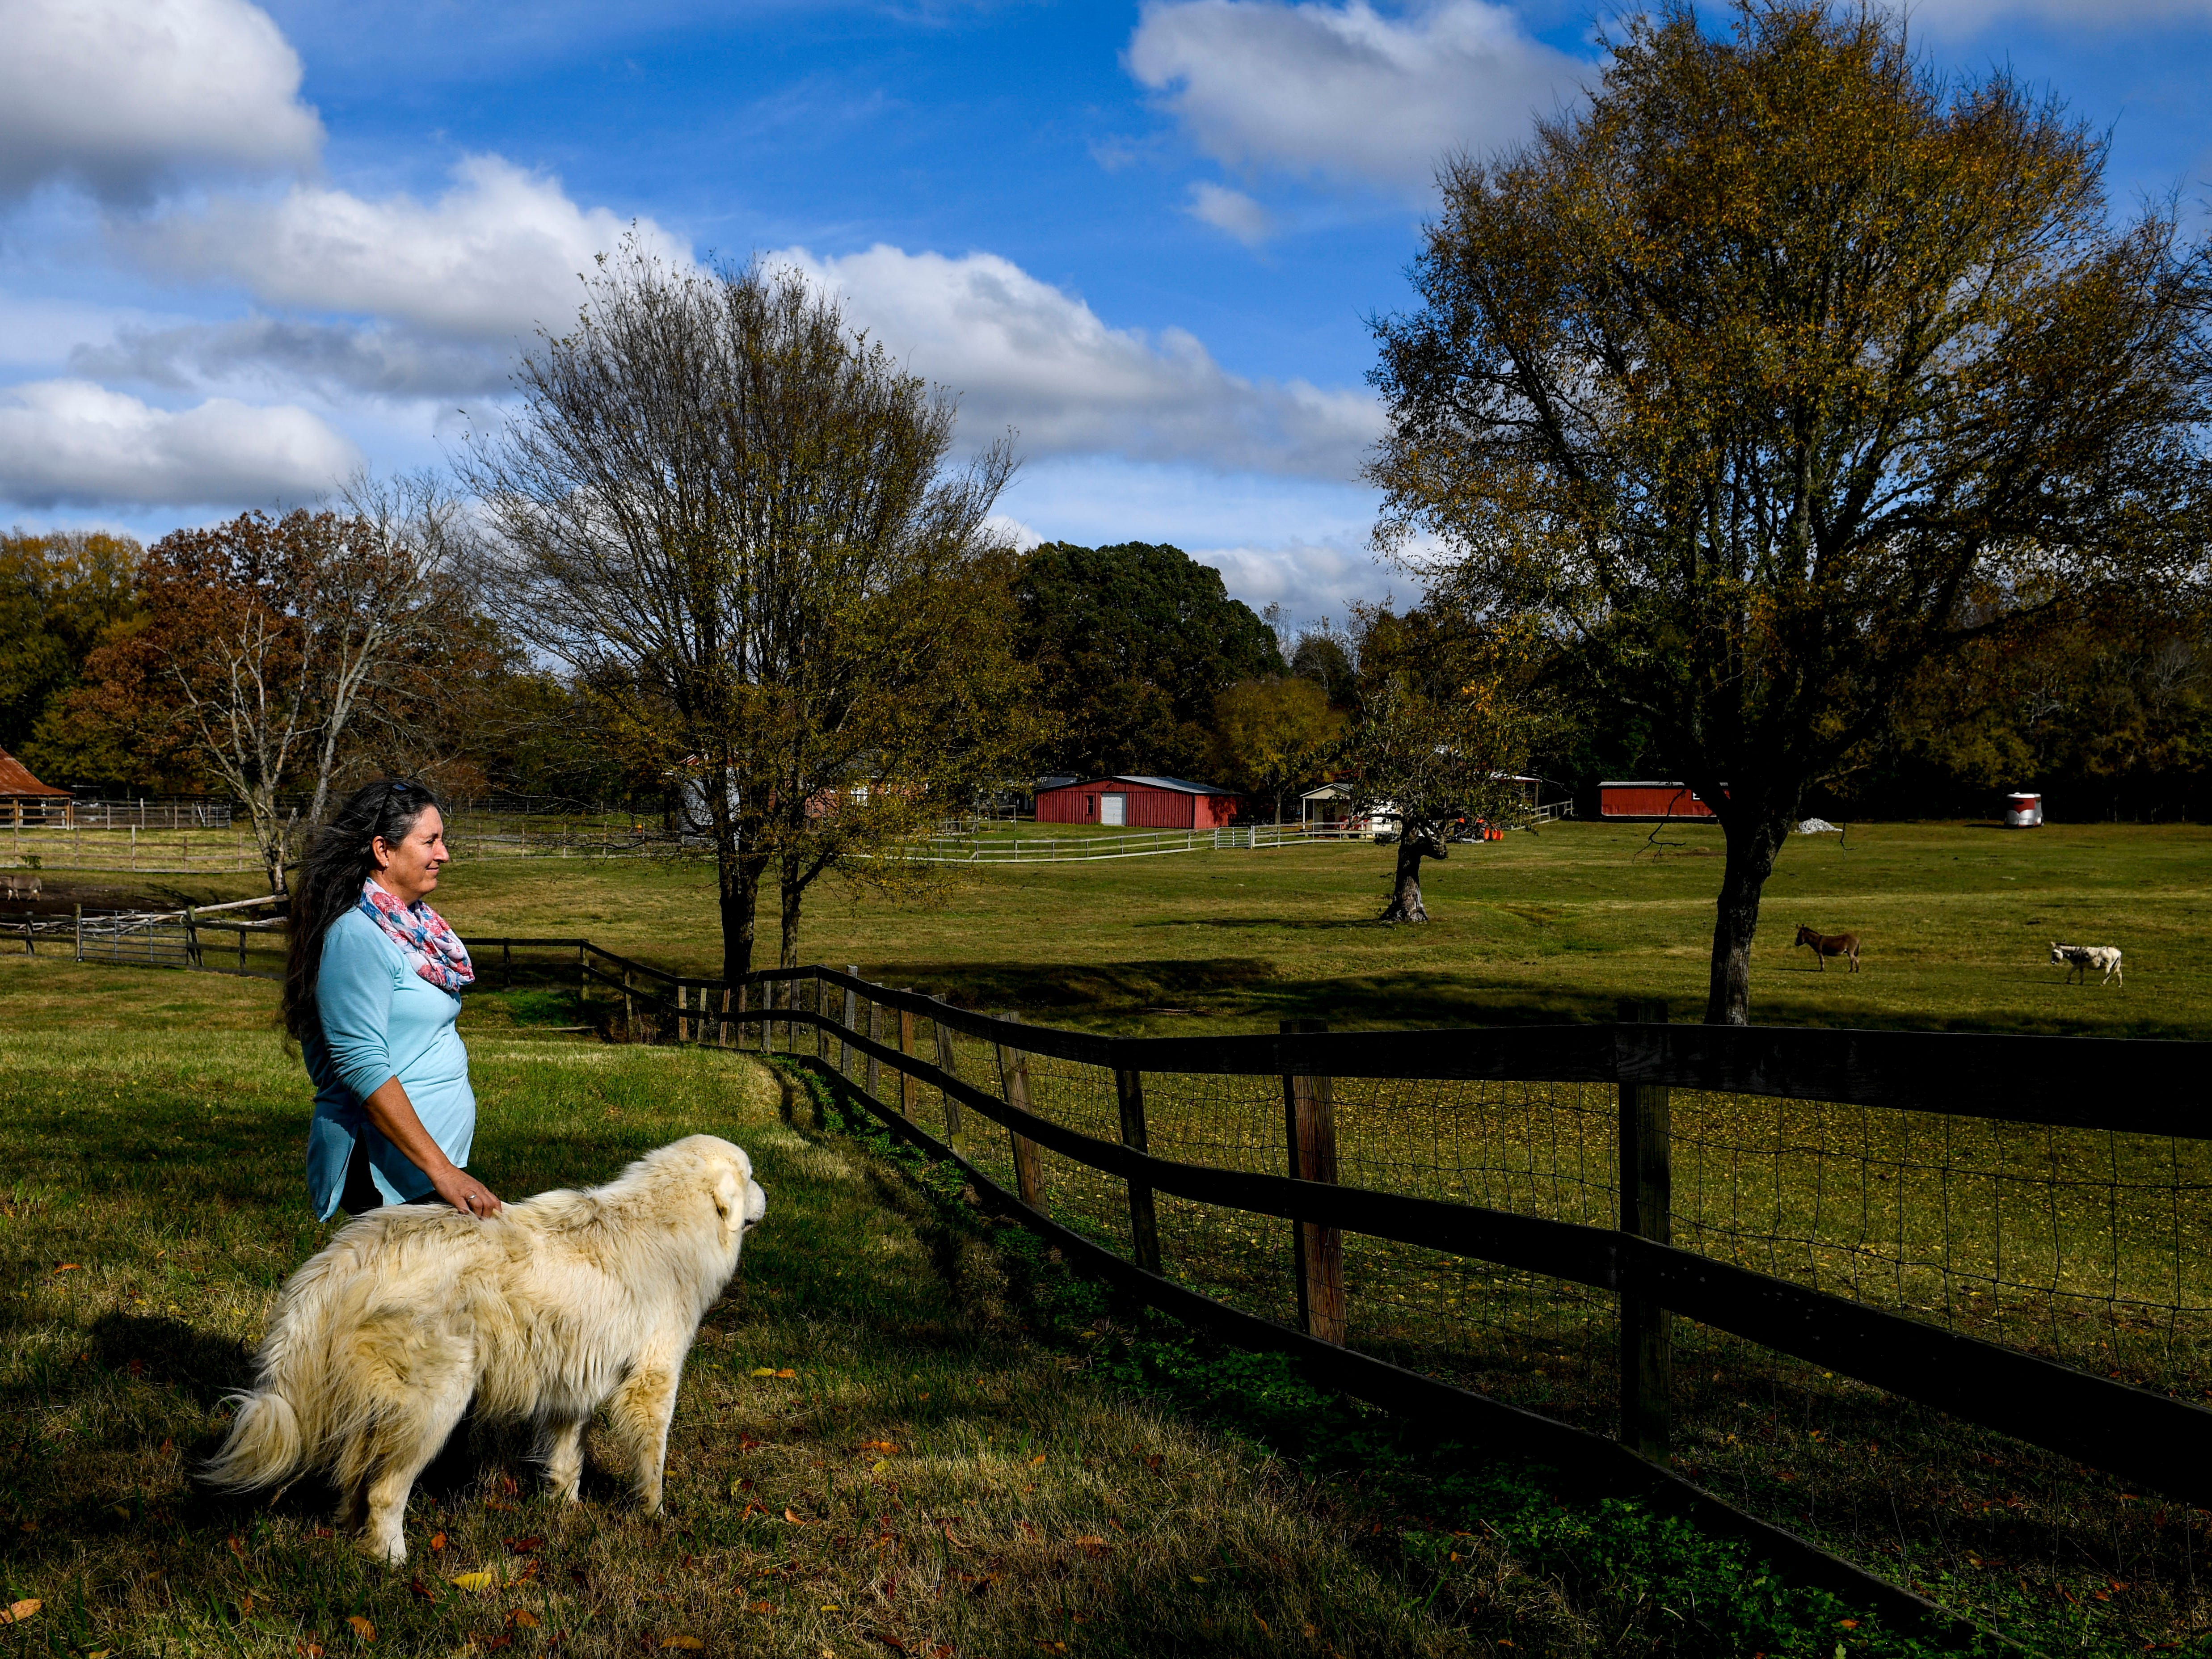 Valeria Pitoni stands with her Great Pyrenees Dusty in front of a fence separating the pasture from a smaller field for guests at Stillwaters Farm in Henderson, Tenn., on Monday, Nov. 5, 2018.